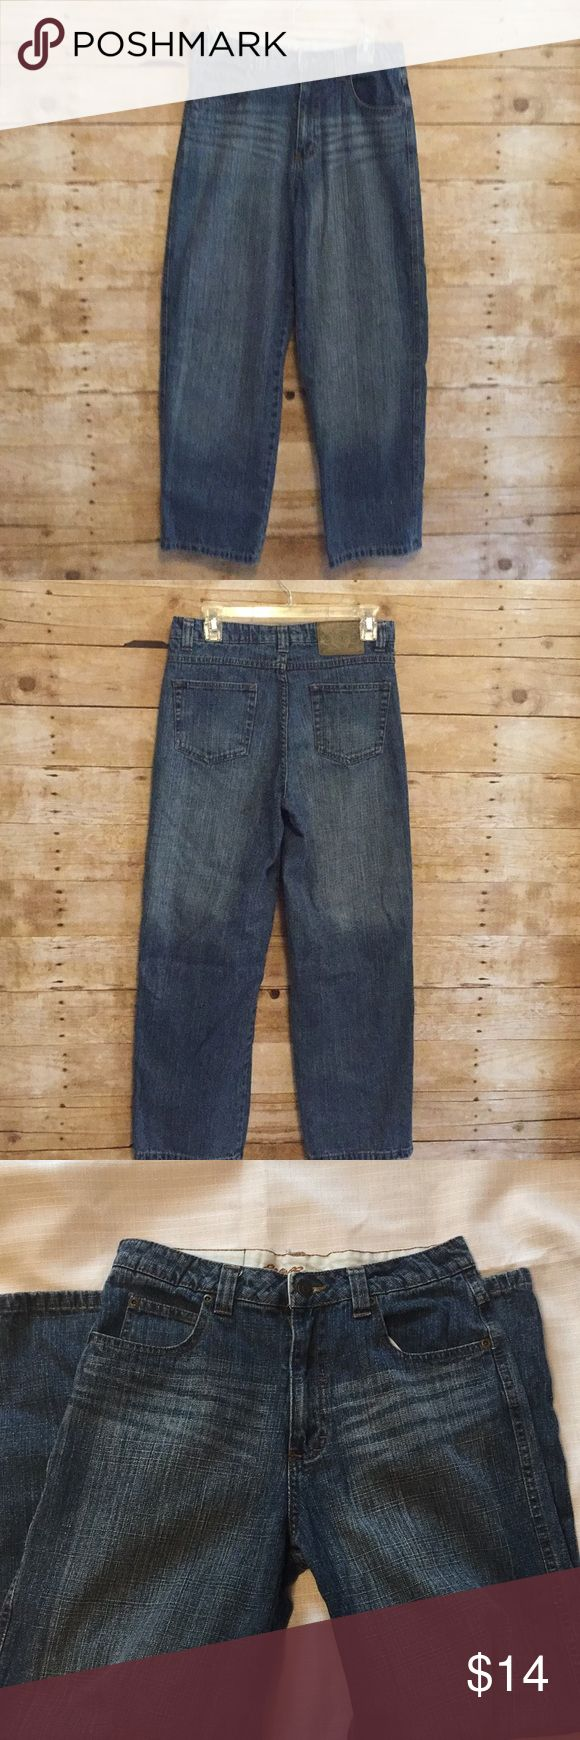 """🎃Womens Eddie Bauer Mid-Rise Boot Cut Jeans Sz 14 Like new Women's Mid-Rise Jeans that can be dressed up for date night or dressed down for running errands. There is no visible damage, but they do run small. They are size 14, but fits more like a 12.                                                            💙Waist measures 15"""" from side to side.     💙 Rise measures 14.5"""".                                  💙 Inseam measures 28"""".                               (P03) Eddie Bauer Jeans Boot…"""